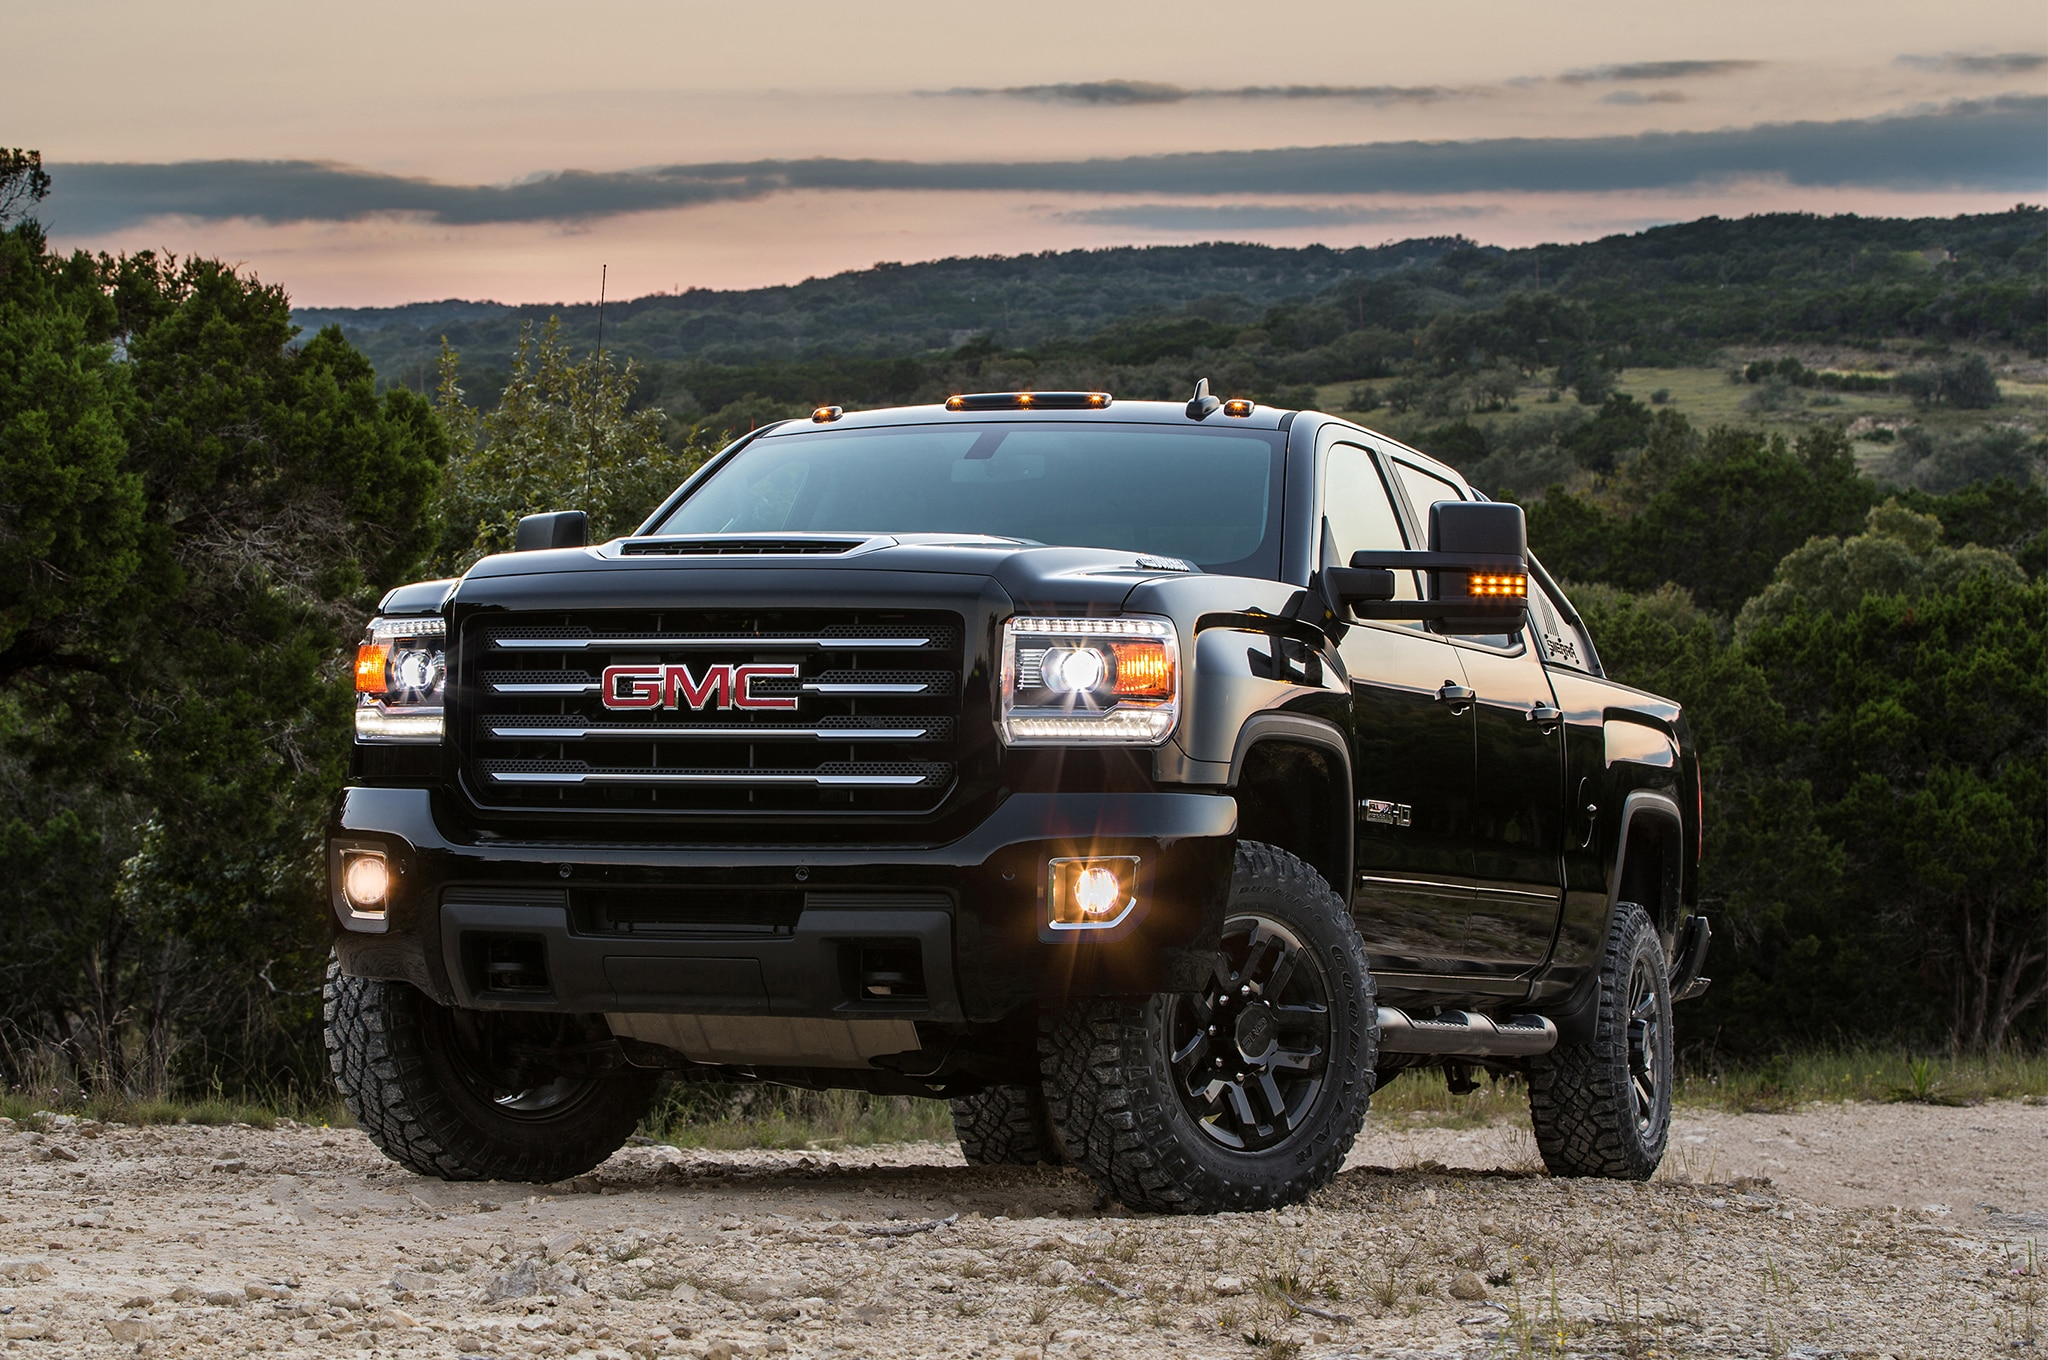 2017 gmc sierra hd all terrain x brings high torque to the trails automobile magazine. Black Bedroom Furniture Sets. Home Design Ideas